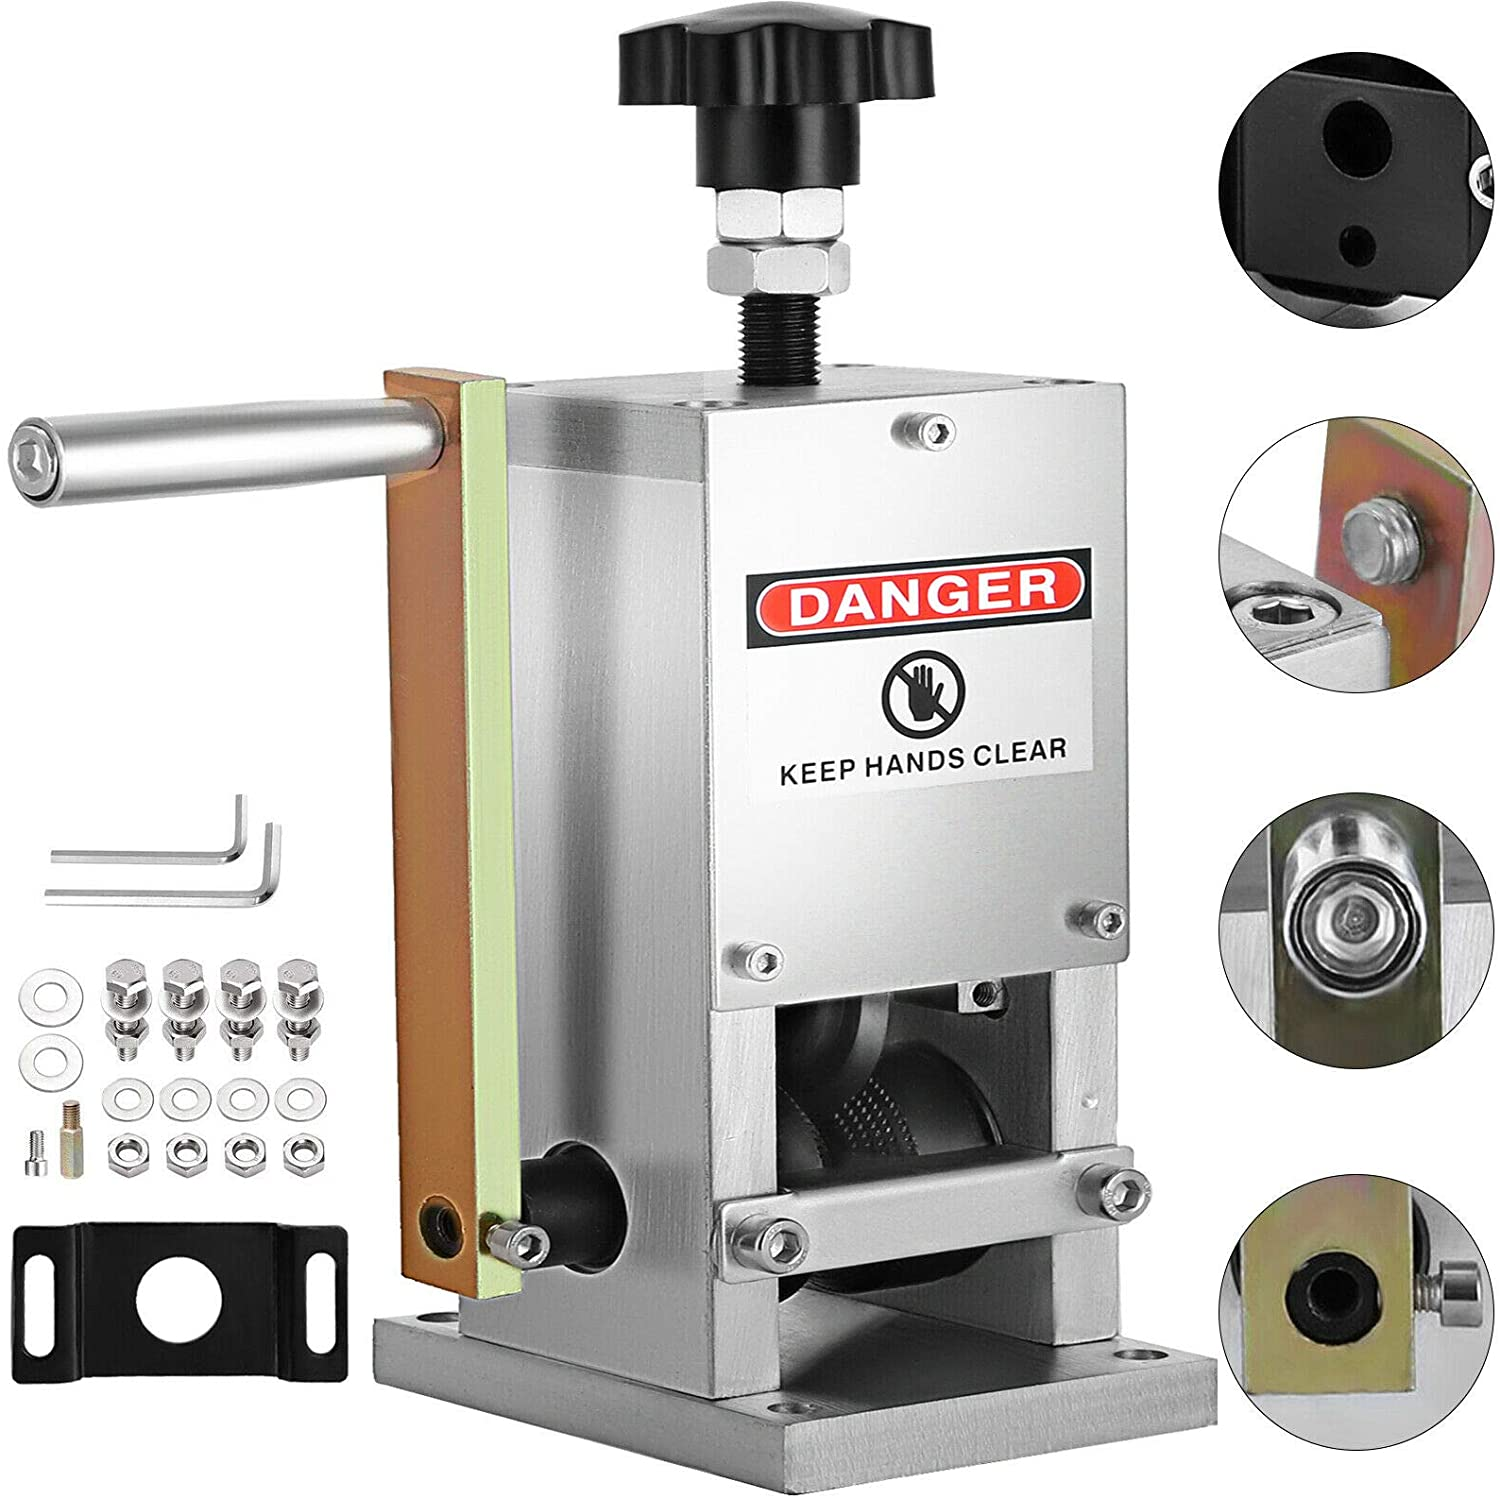 Manual Wire Stripping Machine 0.06-0.98 inches Wire Stripper Machine with Hand Crank Portable Wire Stripping Tool